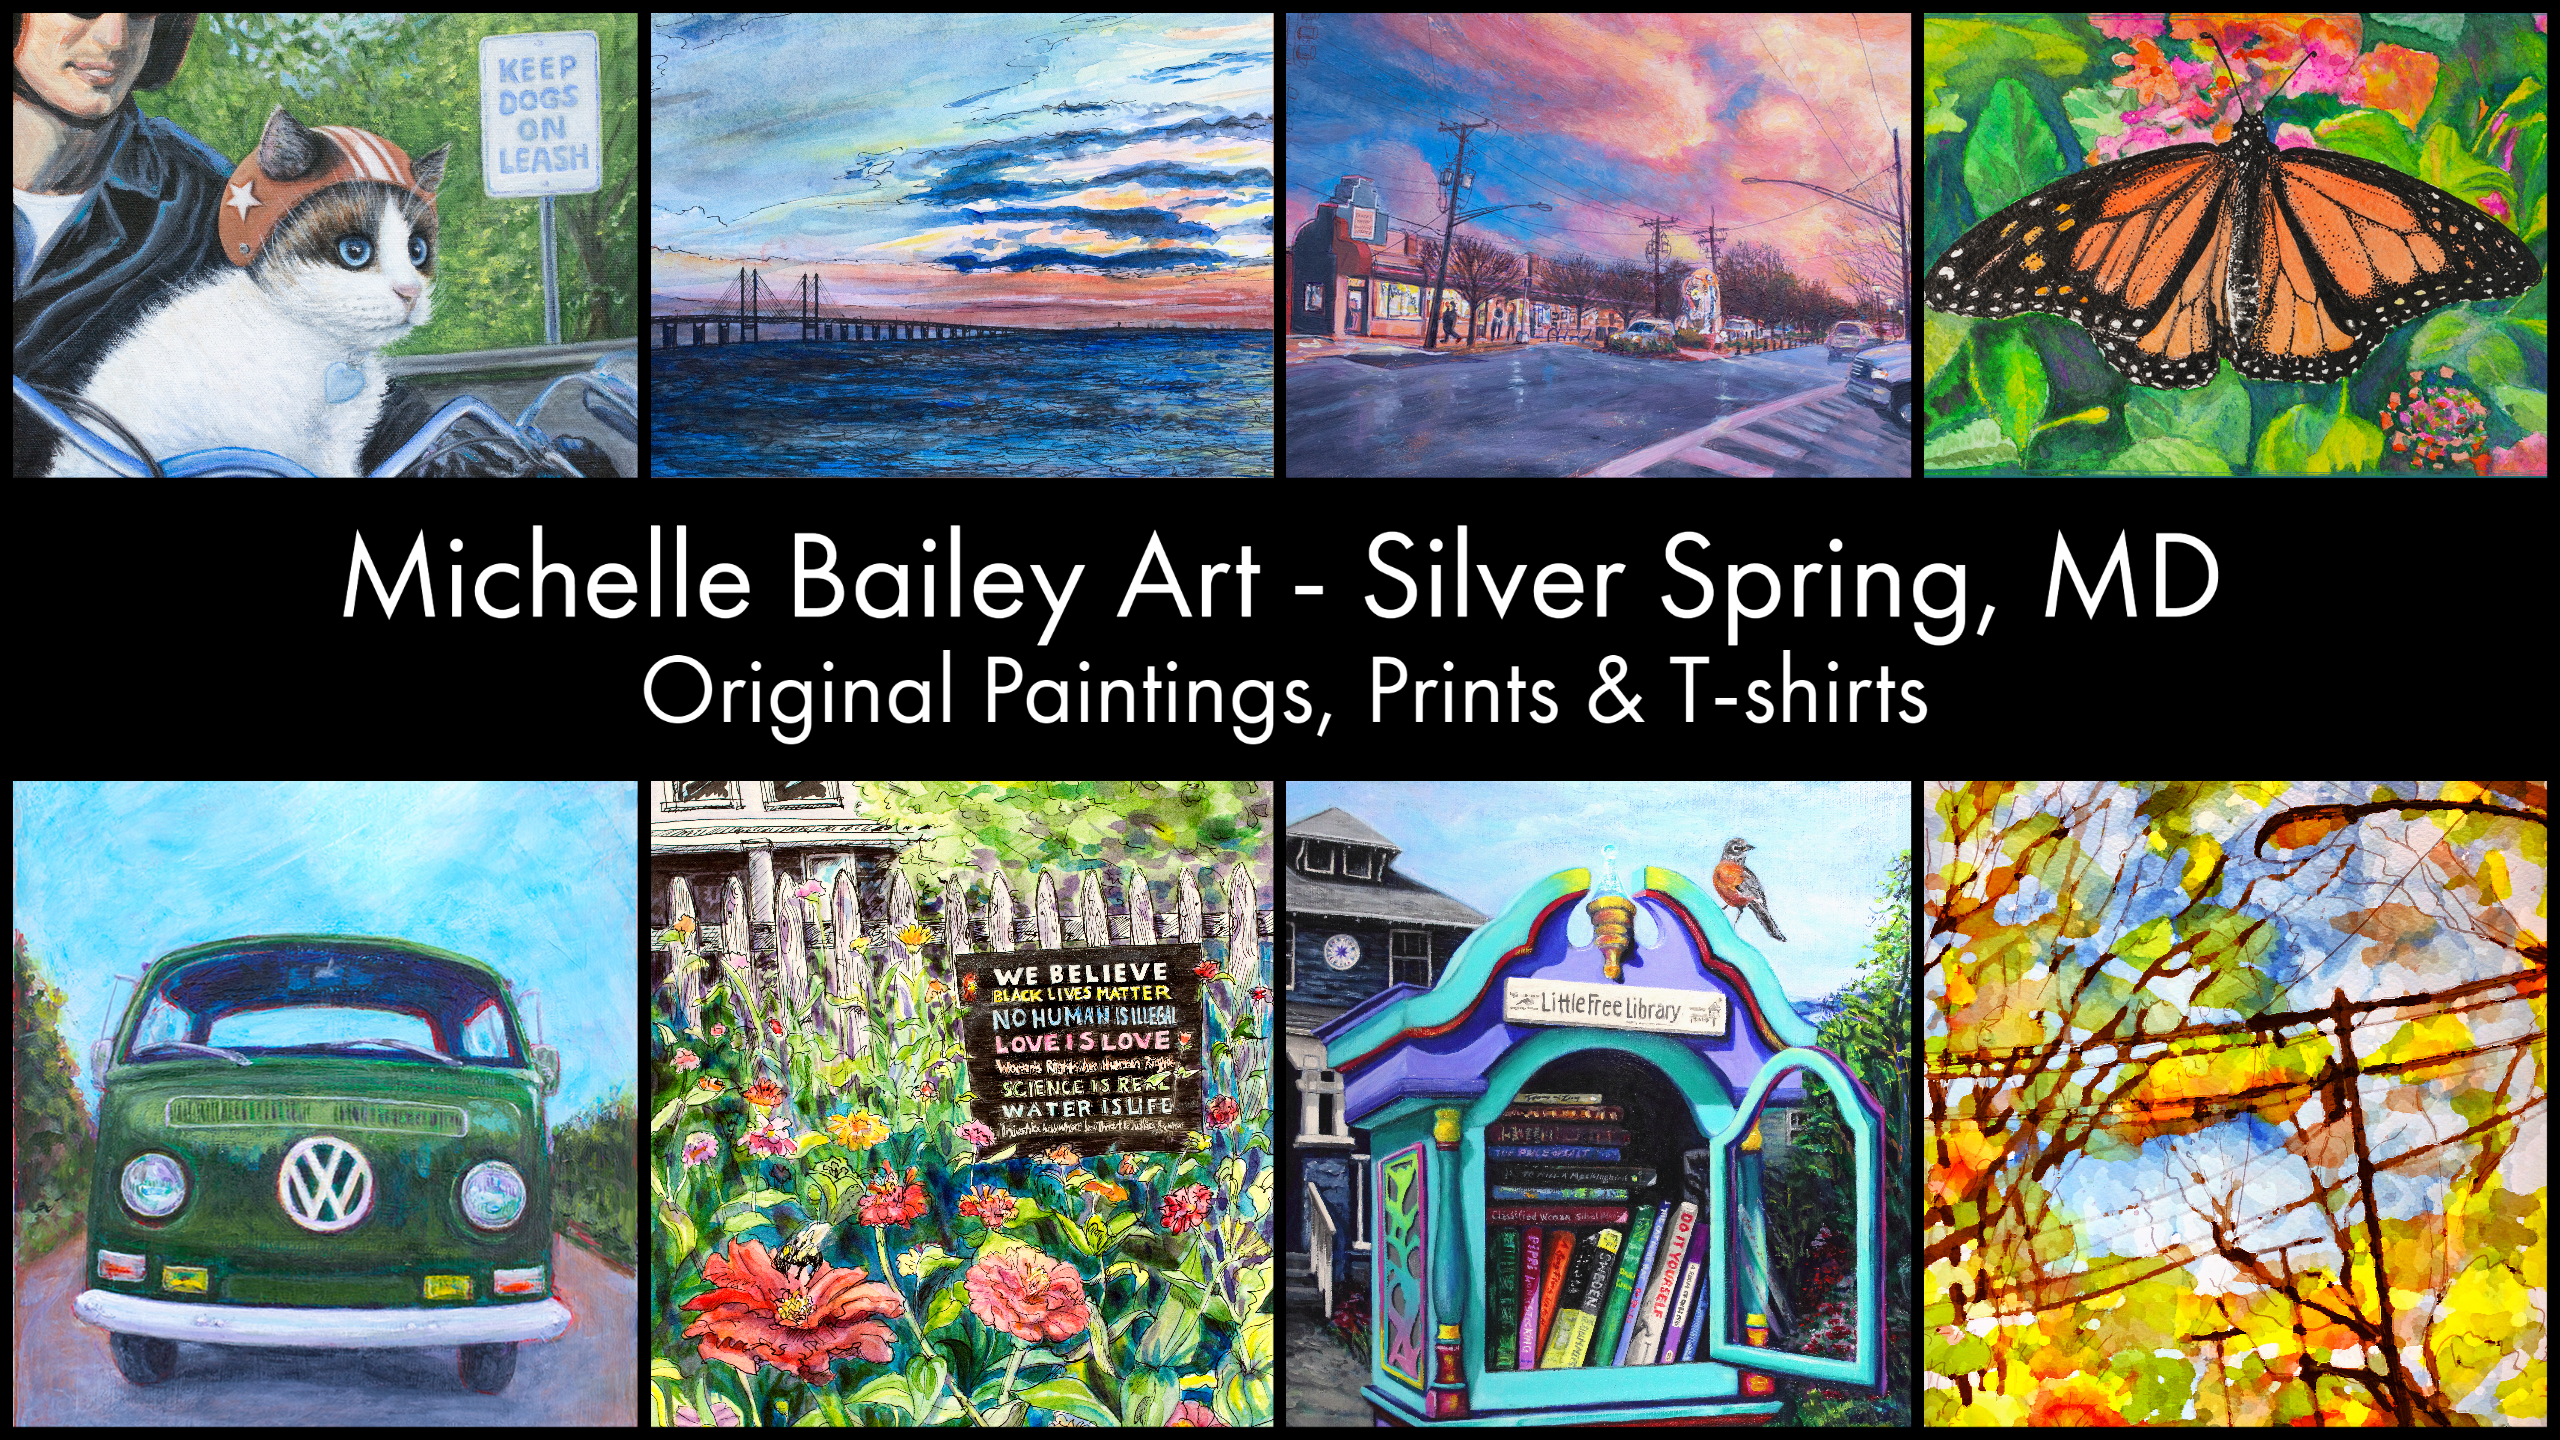 Michelle Bailey Art - Silver Spring, MD - Original Paintings, Prints & T-shirts